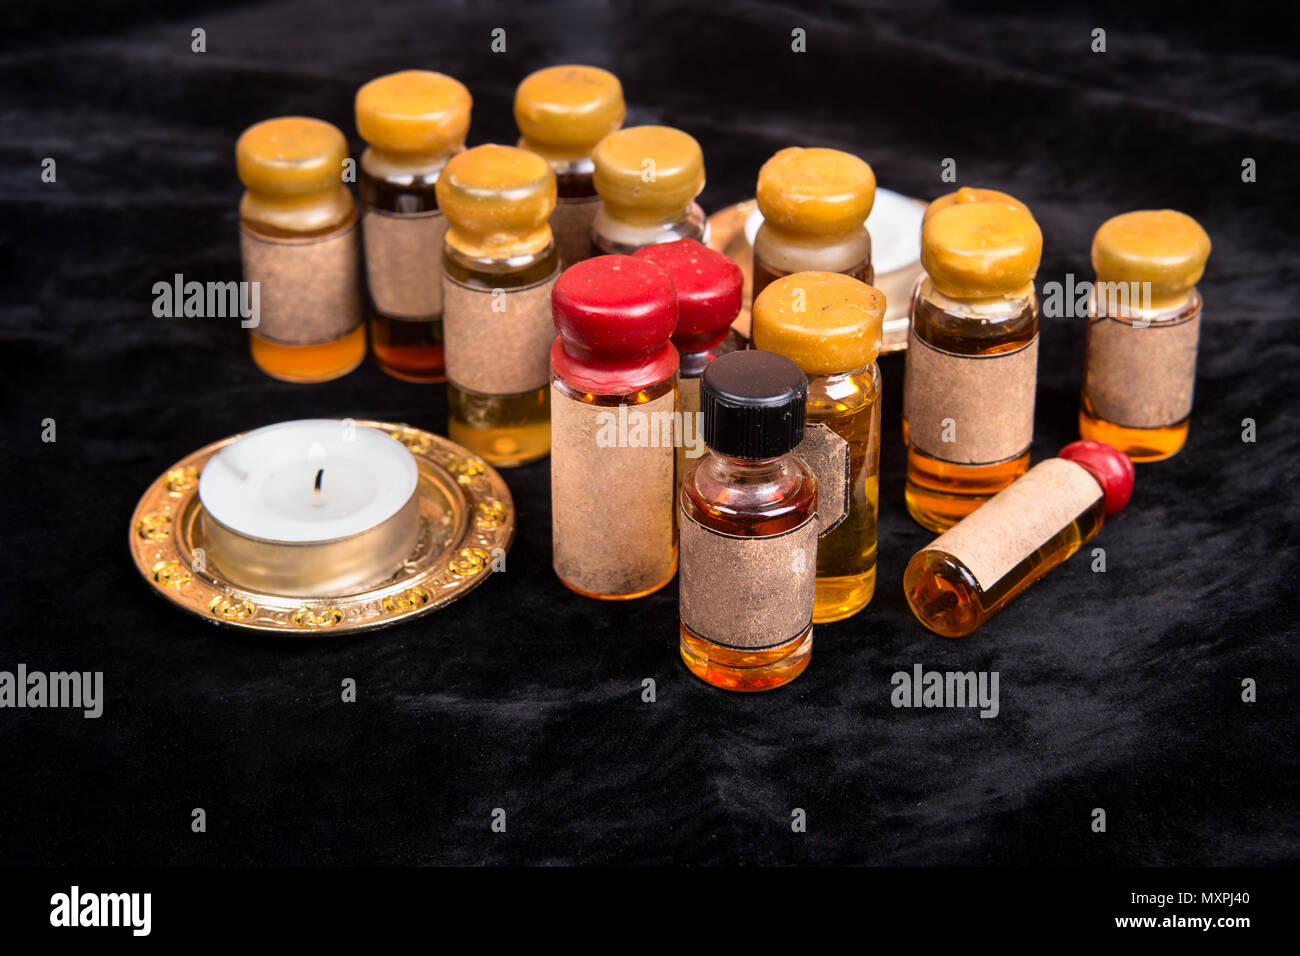 Lot of bottles with a magical potion on a dark background - Stock Image